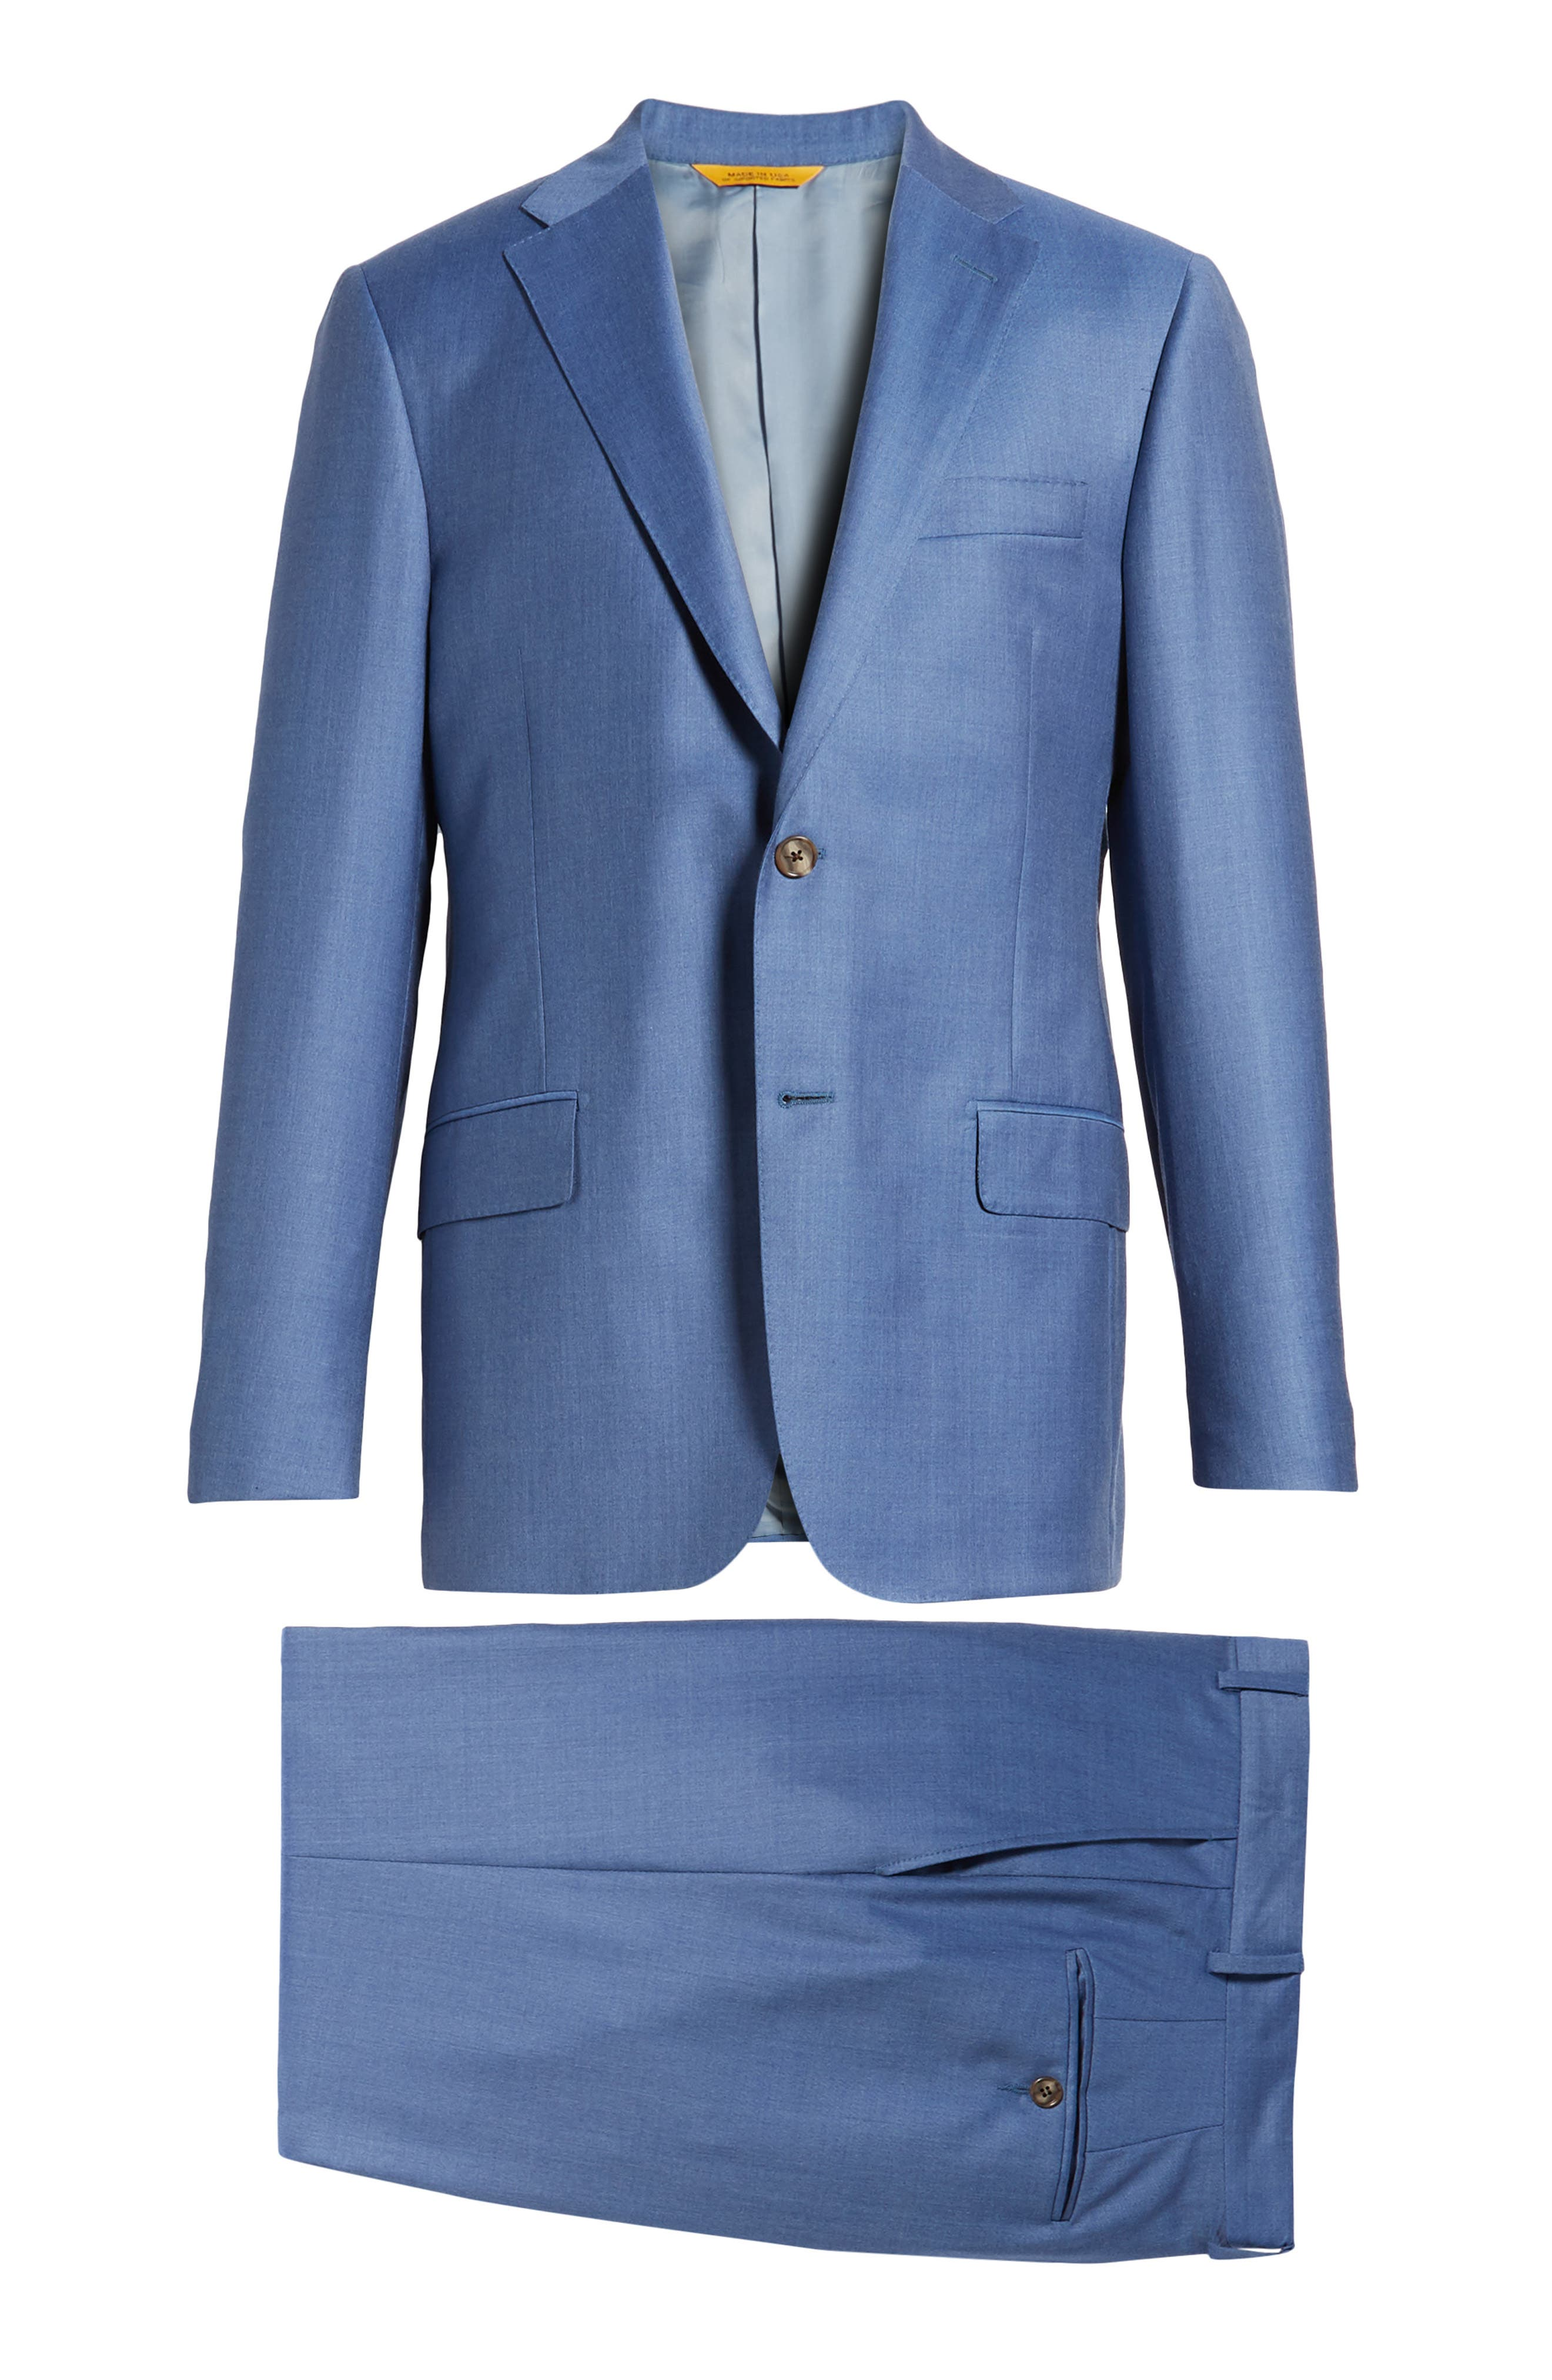 Classic B Fit Solid Wool Suit,                             Alternate thumbnail 8, color,                             Light Blue Solid